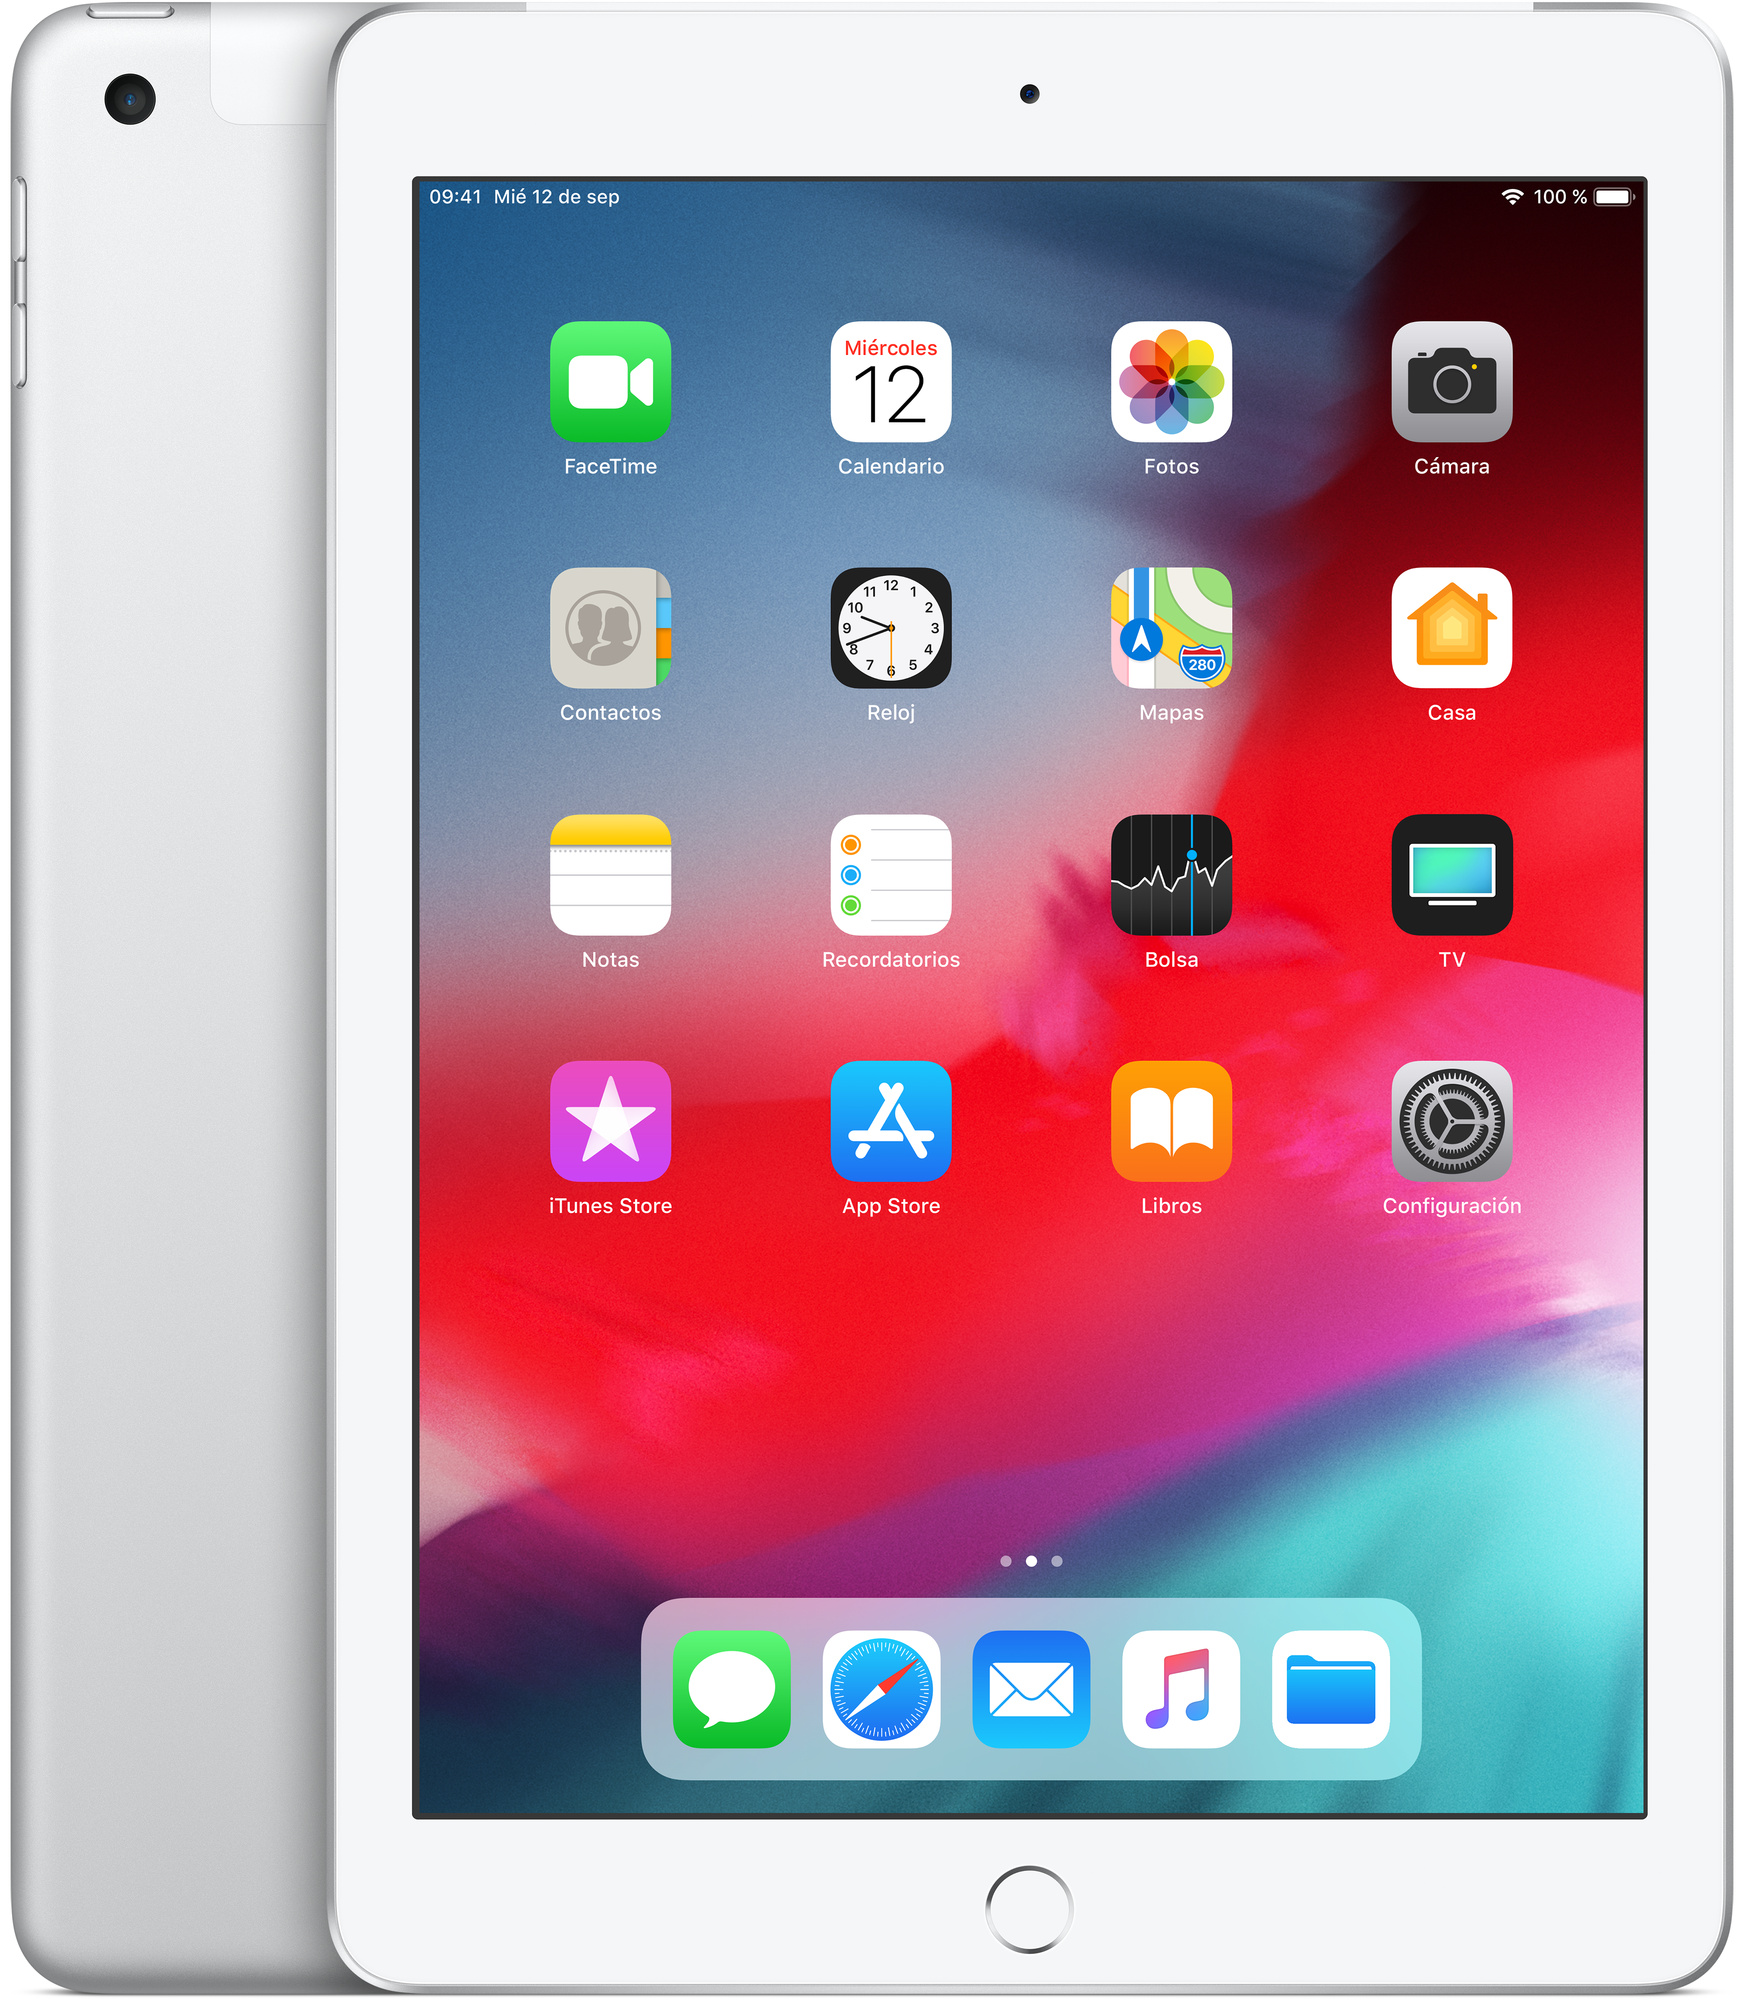 Calendario Fi.Ipad Con Wi Fi Cellular 128 Gb Color Plata